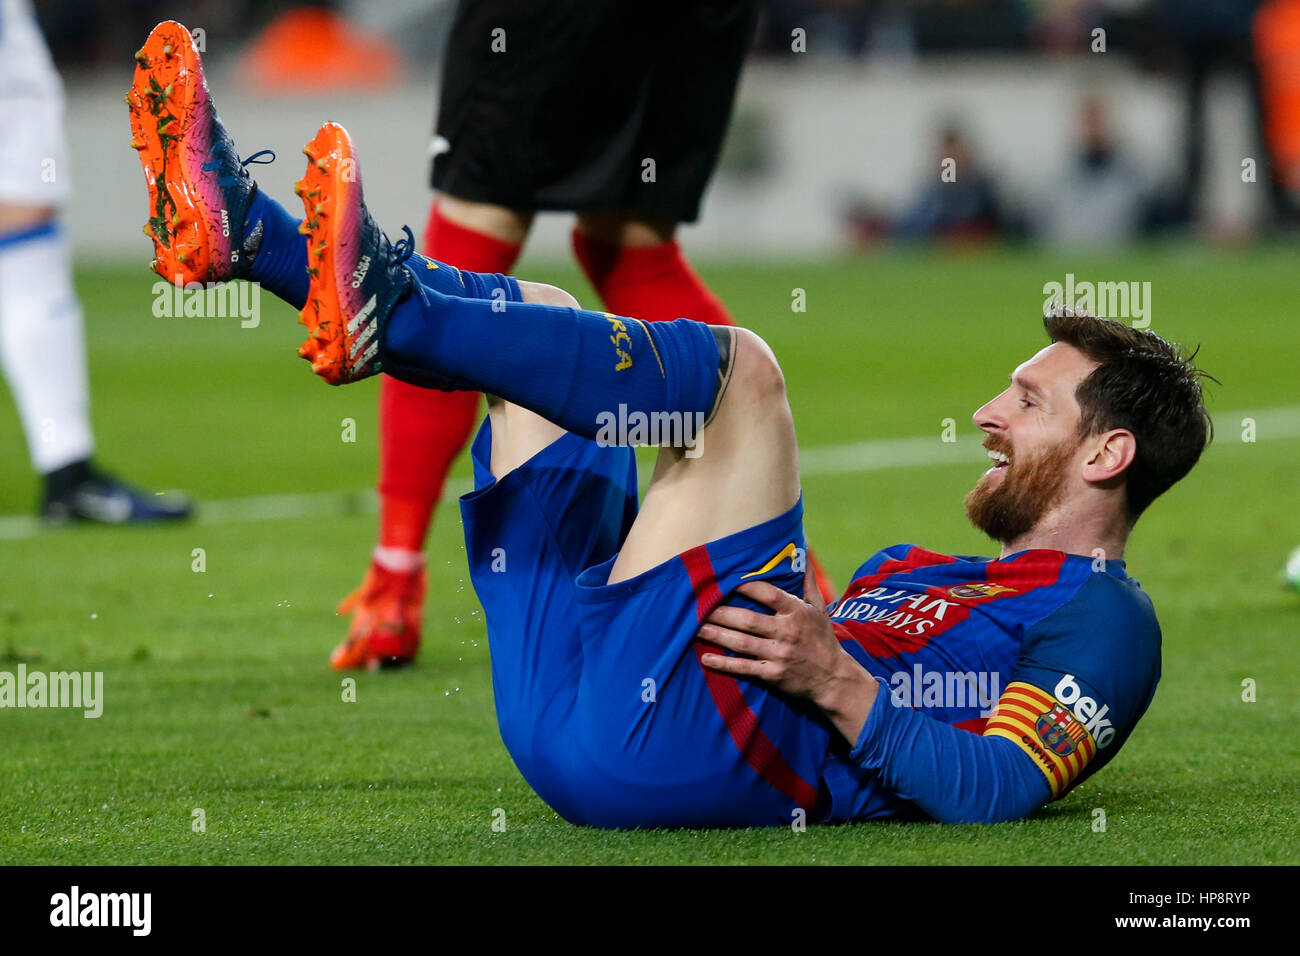 Barcelona, Spain. 19th Feb, 2017. Barcelona's Lionel Messi reacts during the Spanish first division soccer match - Stock Image